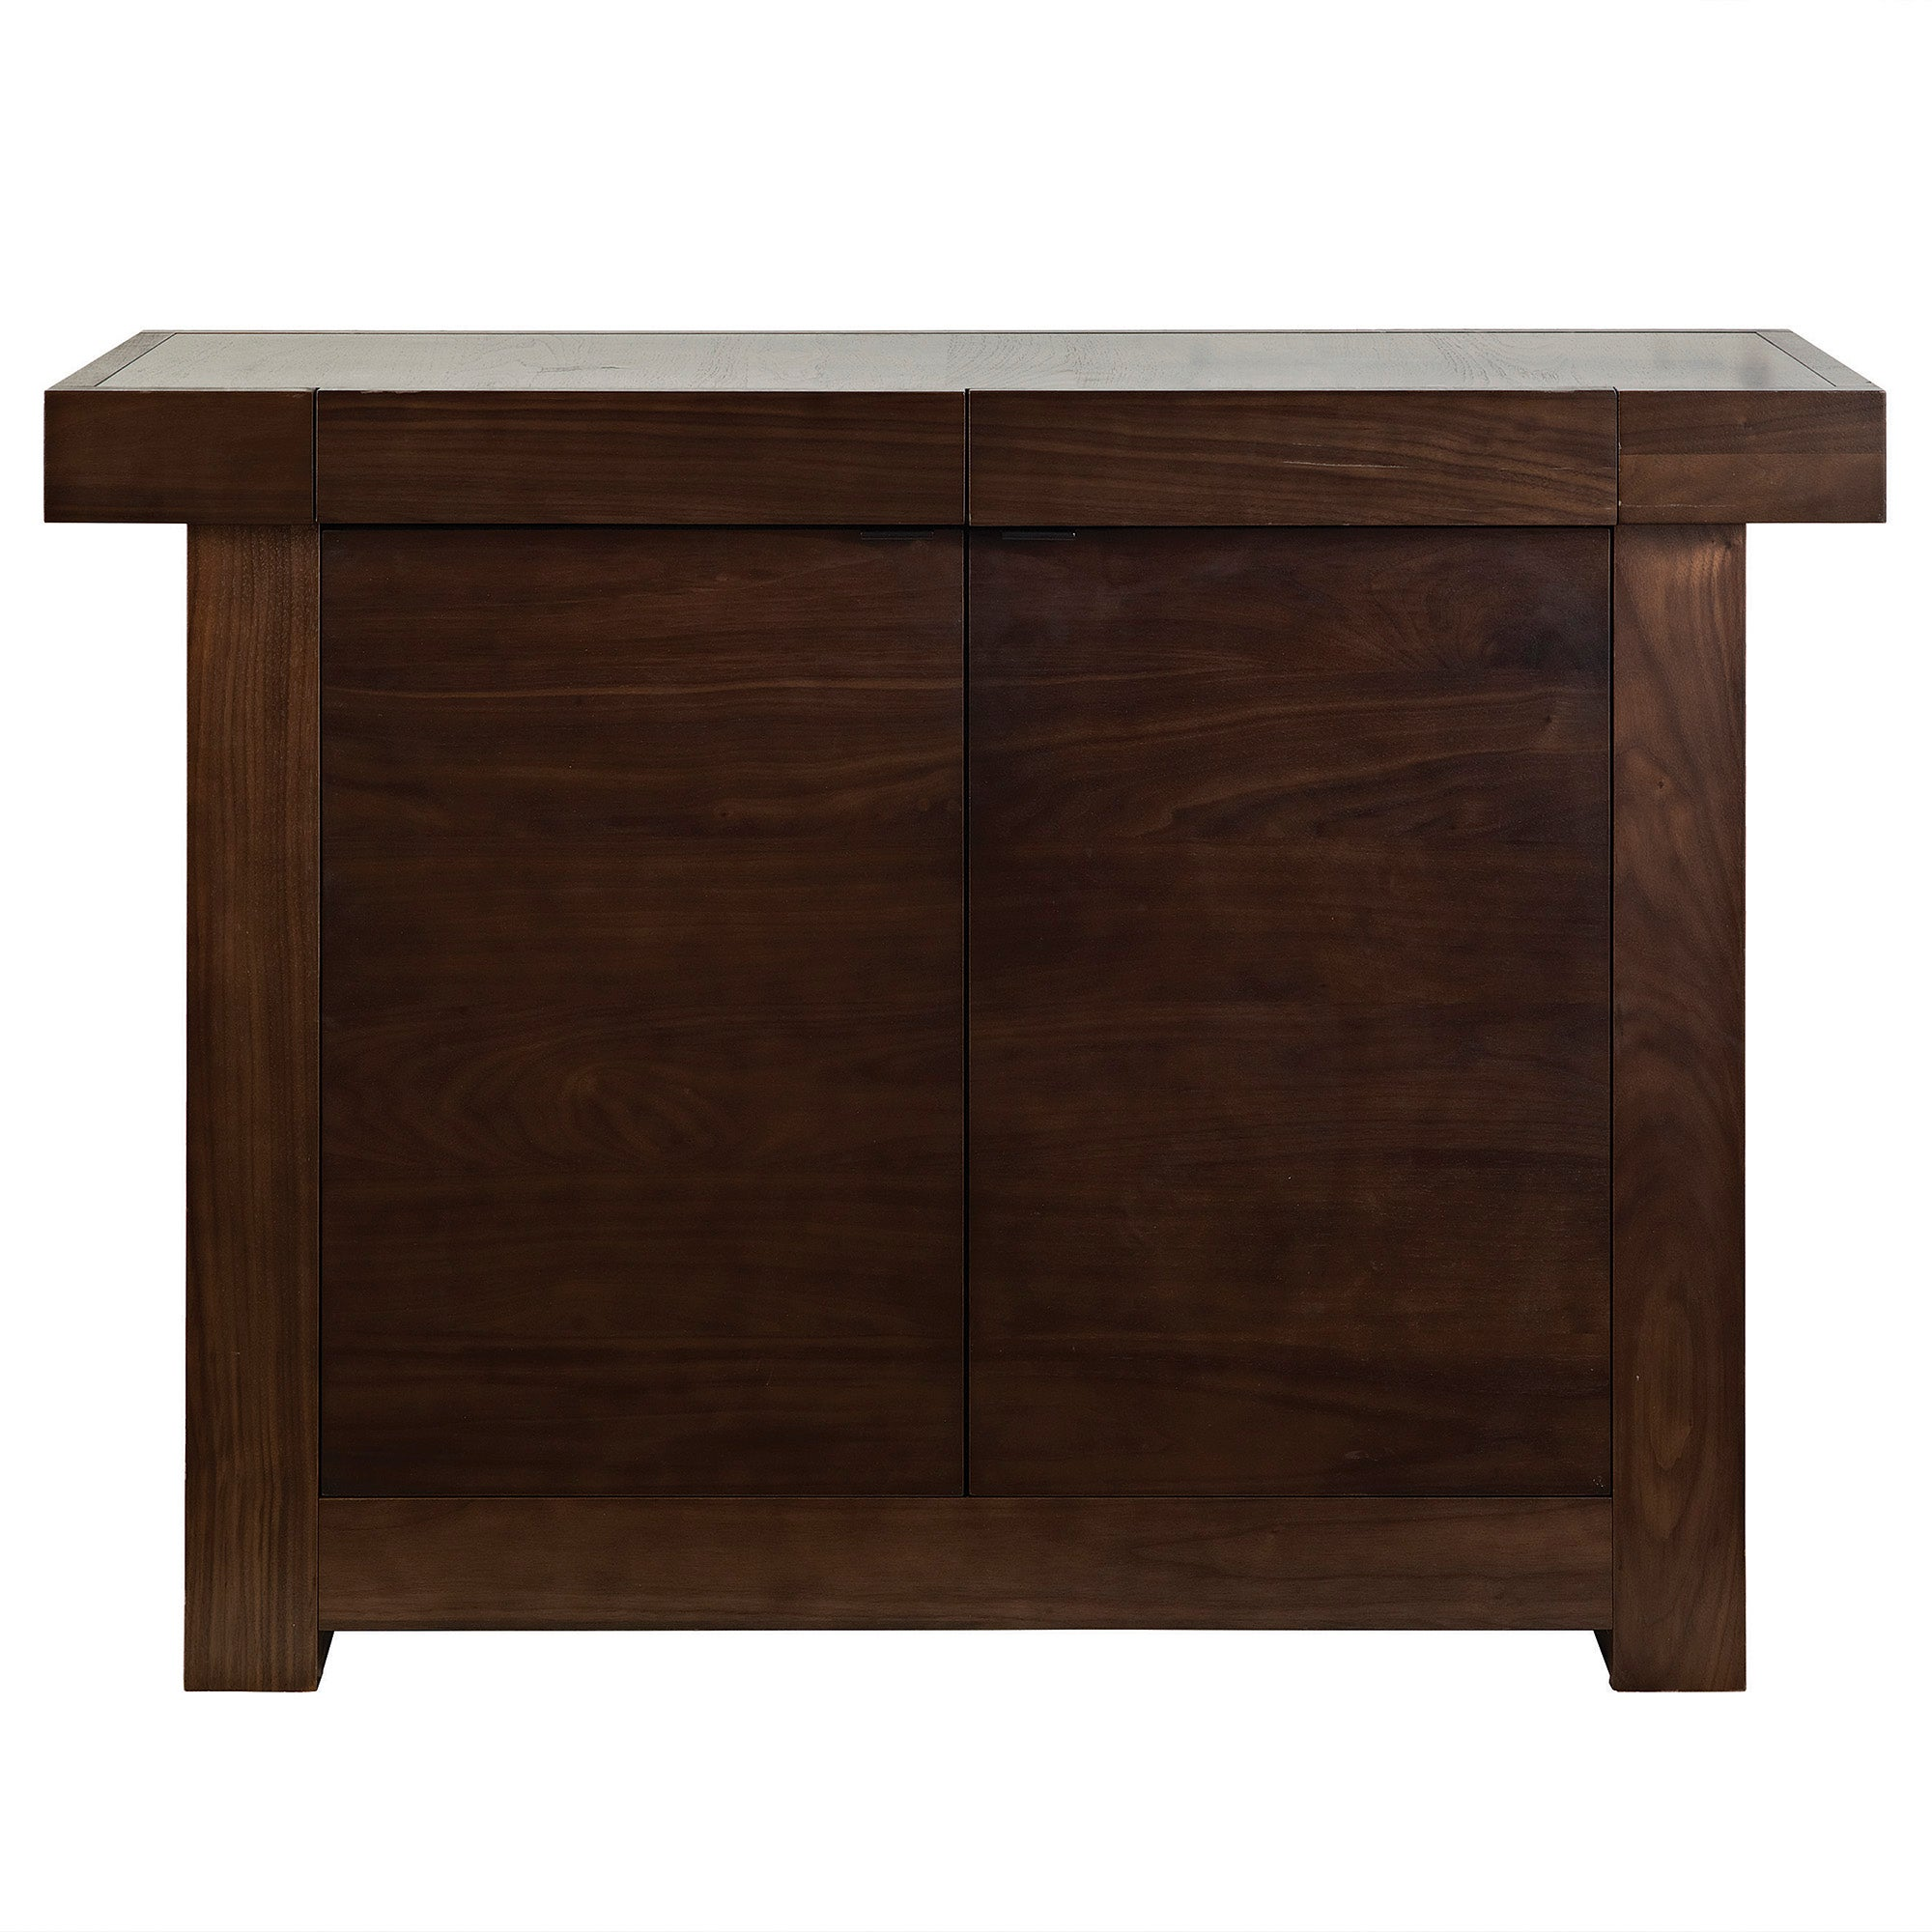 Wade Walnut Living Furniture Collection